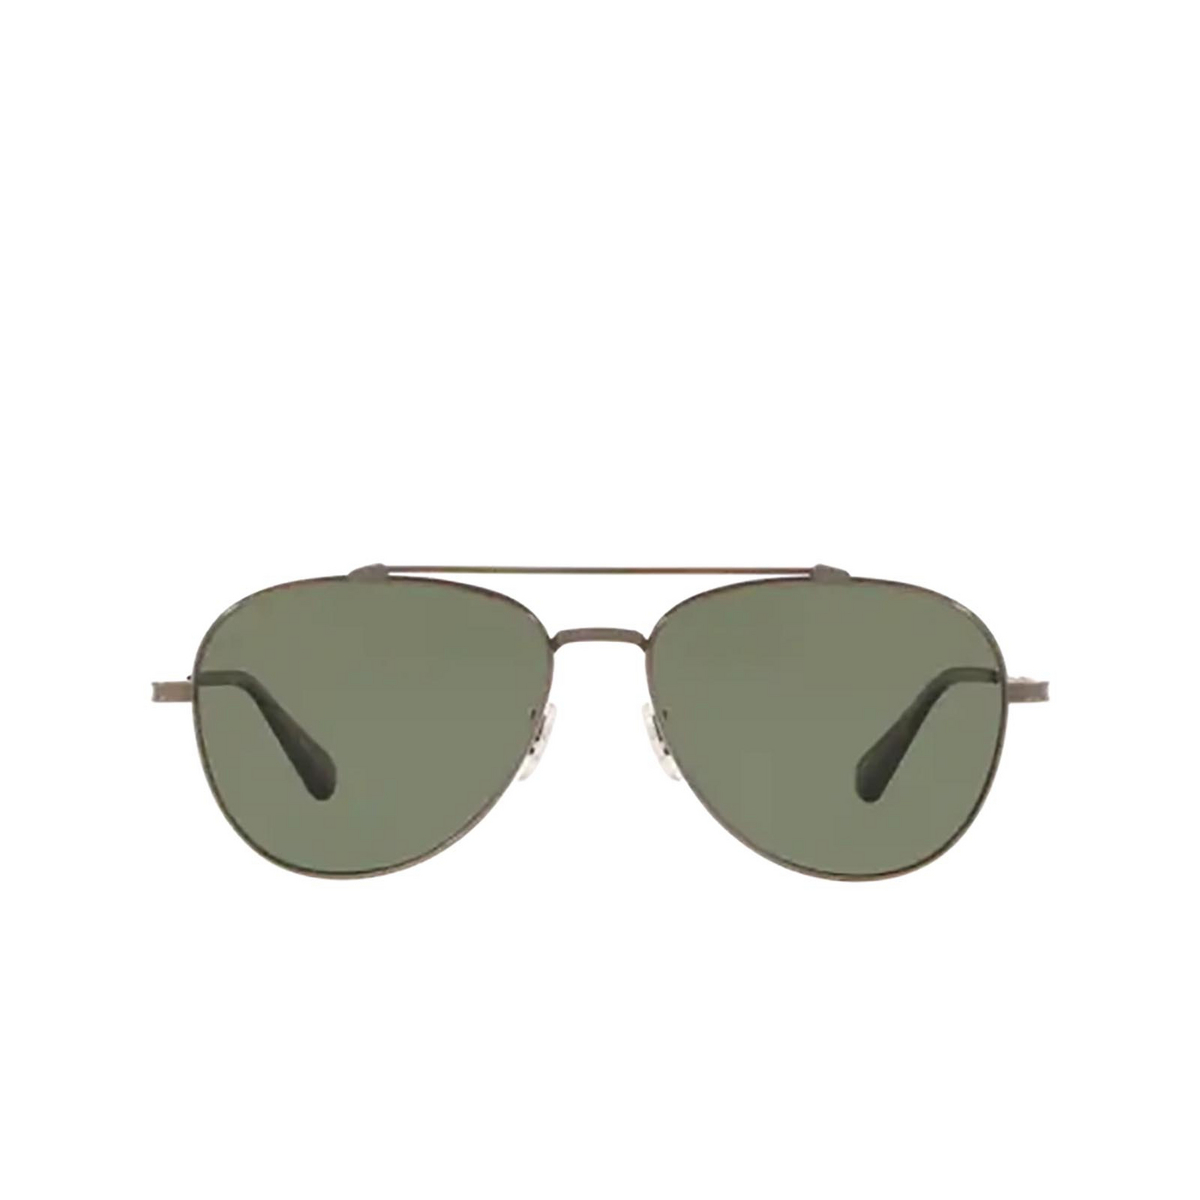 Oliver Peoples® Aviator Sunglasses: Rikson OV1266ST color Antique Pewter 50769A - front view.